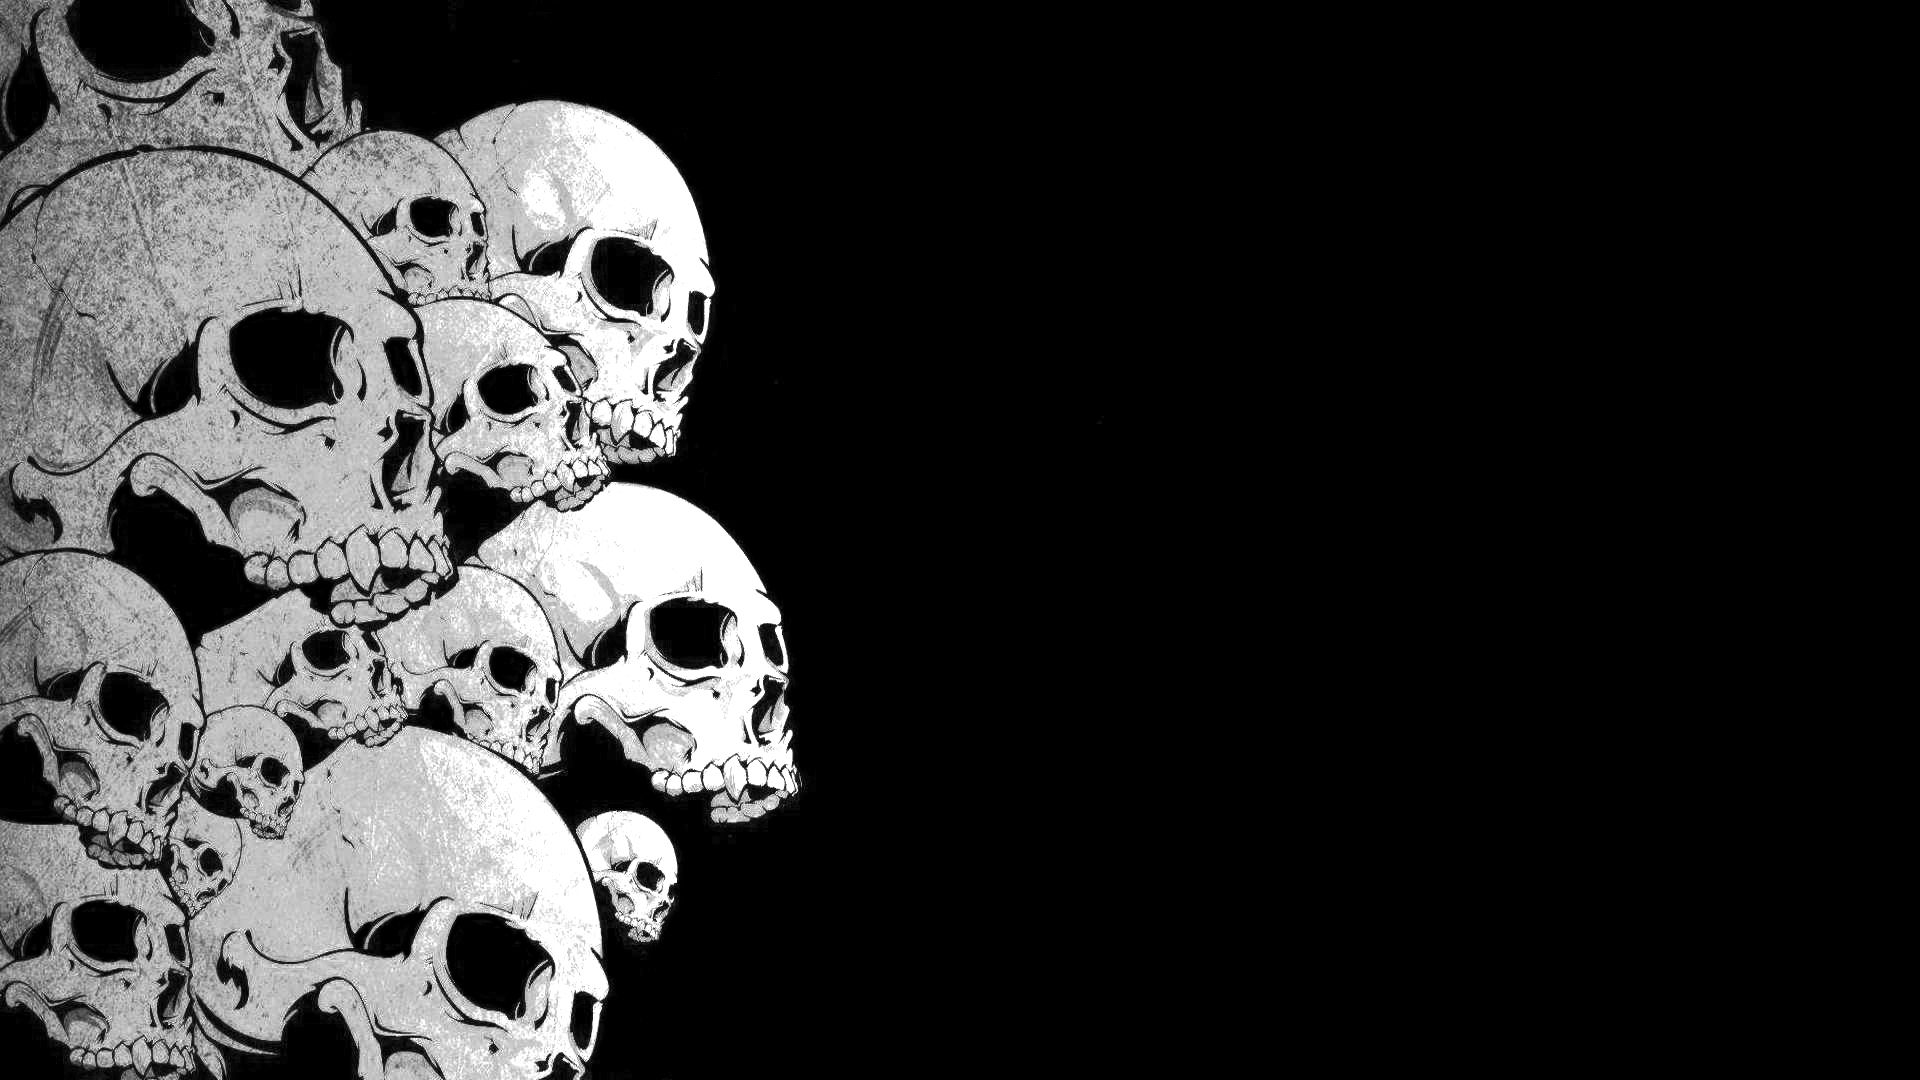 Skull Wallpapers Find best latest Skull Wallpapers in HD for your